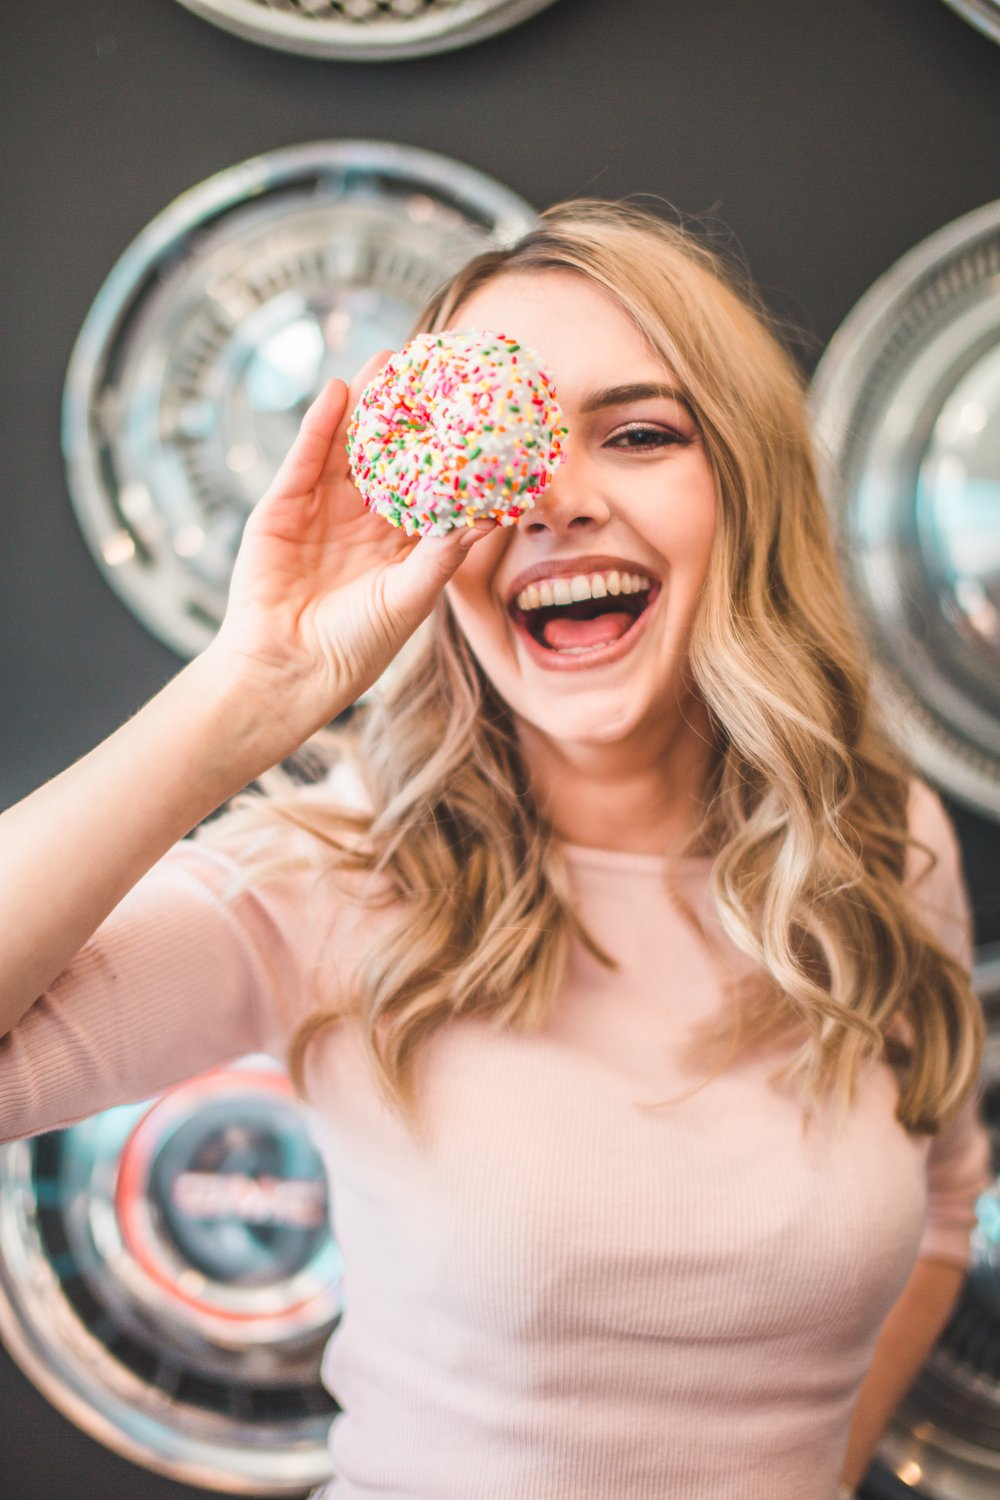 Fun image of a young woman holding a sugary donut over one eye and smilling